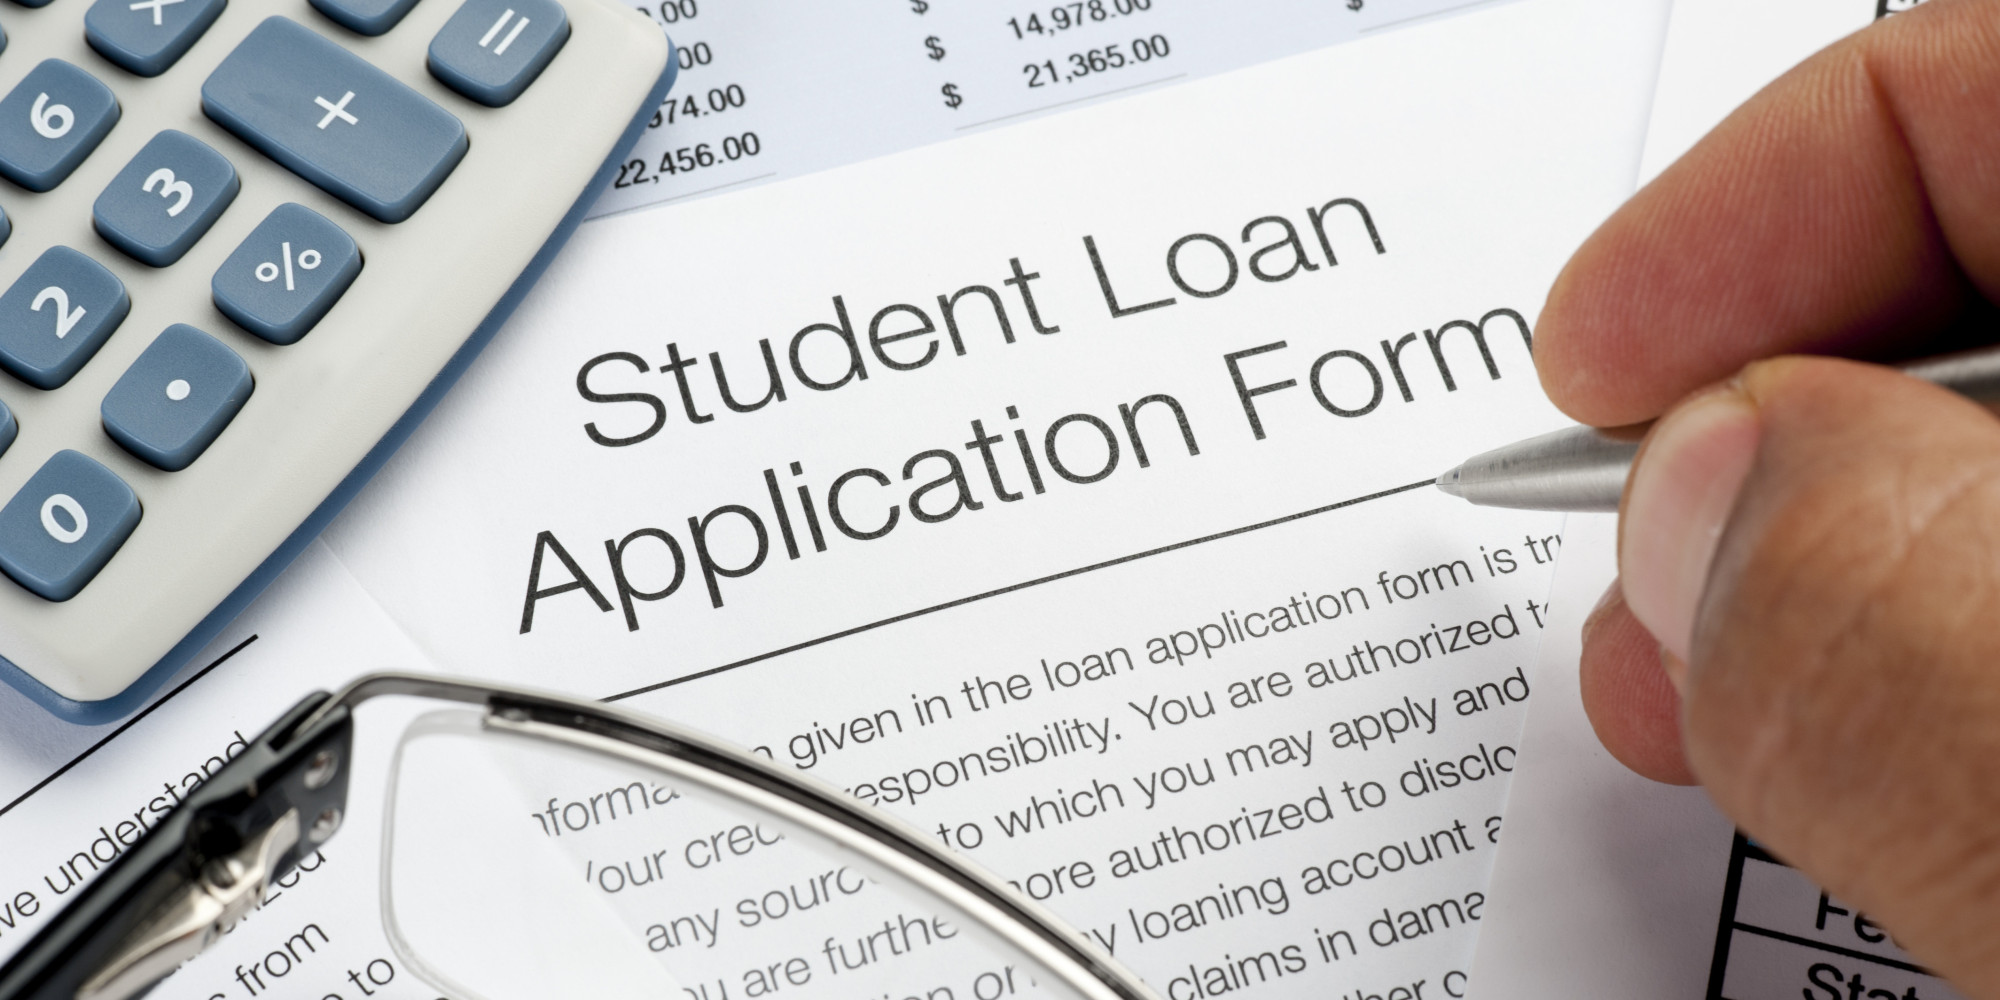 Student Loan Business Declares War on Borrowers | HuffPost on staff loan application form, printable loan application form, student employment application form, student loan brochure, student loan statement of account, sba loan application form, student loan costs, loan deferment form, student loan documents, payday loan application form, student loan payment, student loan interest form, student loan promissory note form, student studying in classroom, student loan repayment form, installment loan application form, student loan essay, car loan application form, student loan services, student loan request form,